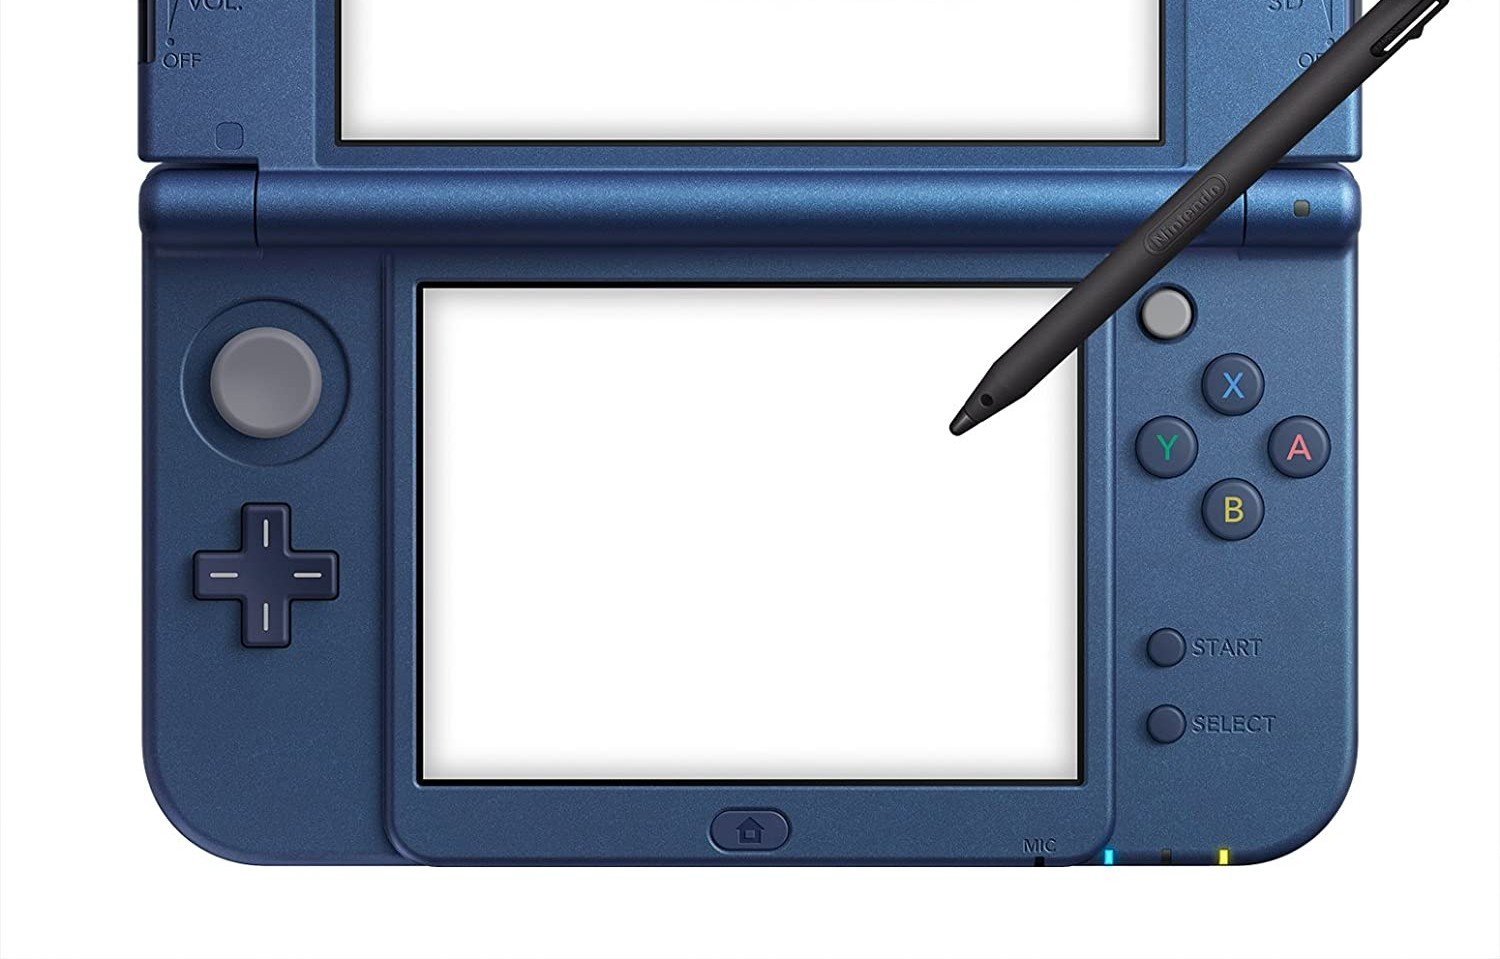 Nintendo seemingly no longer cares about 3DS vulnerabilities, as hacker bounty program shifts entirely to Switch screenshot